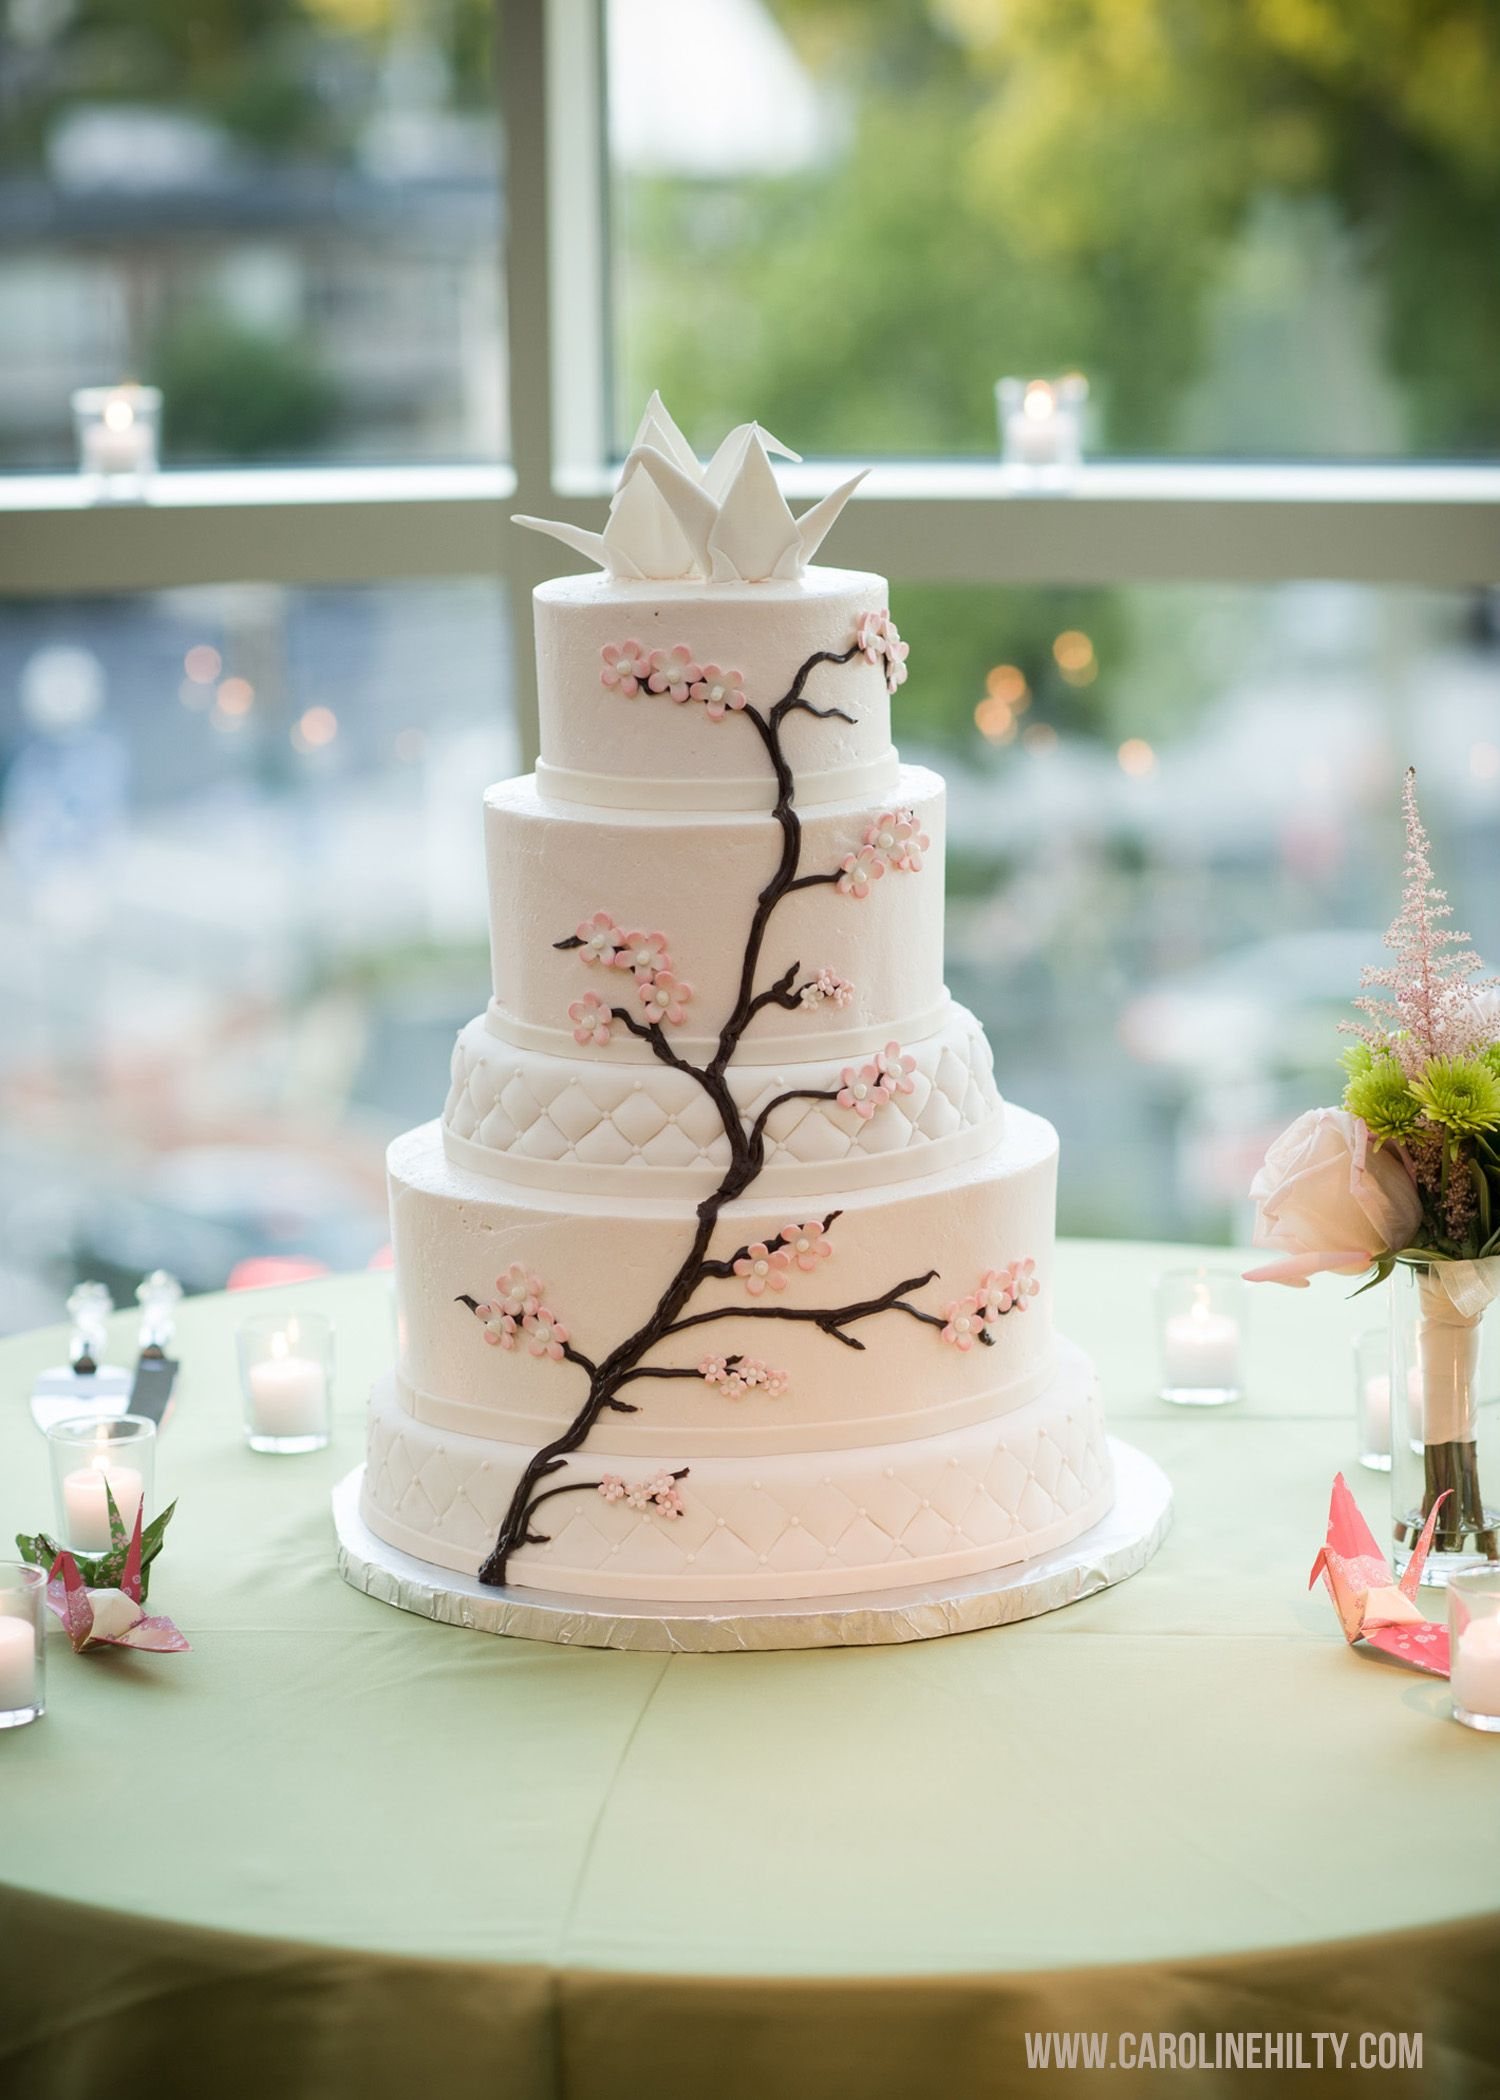 5 tier with cherry blossoms and origami crane cake topper